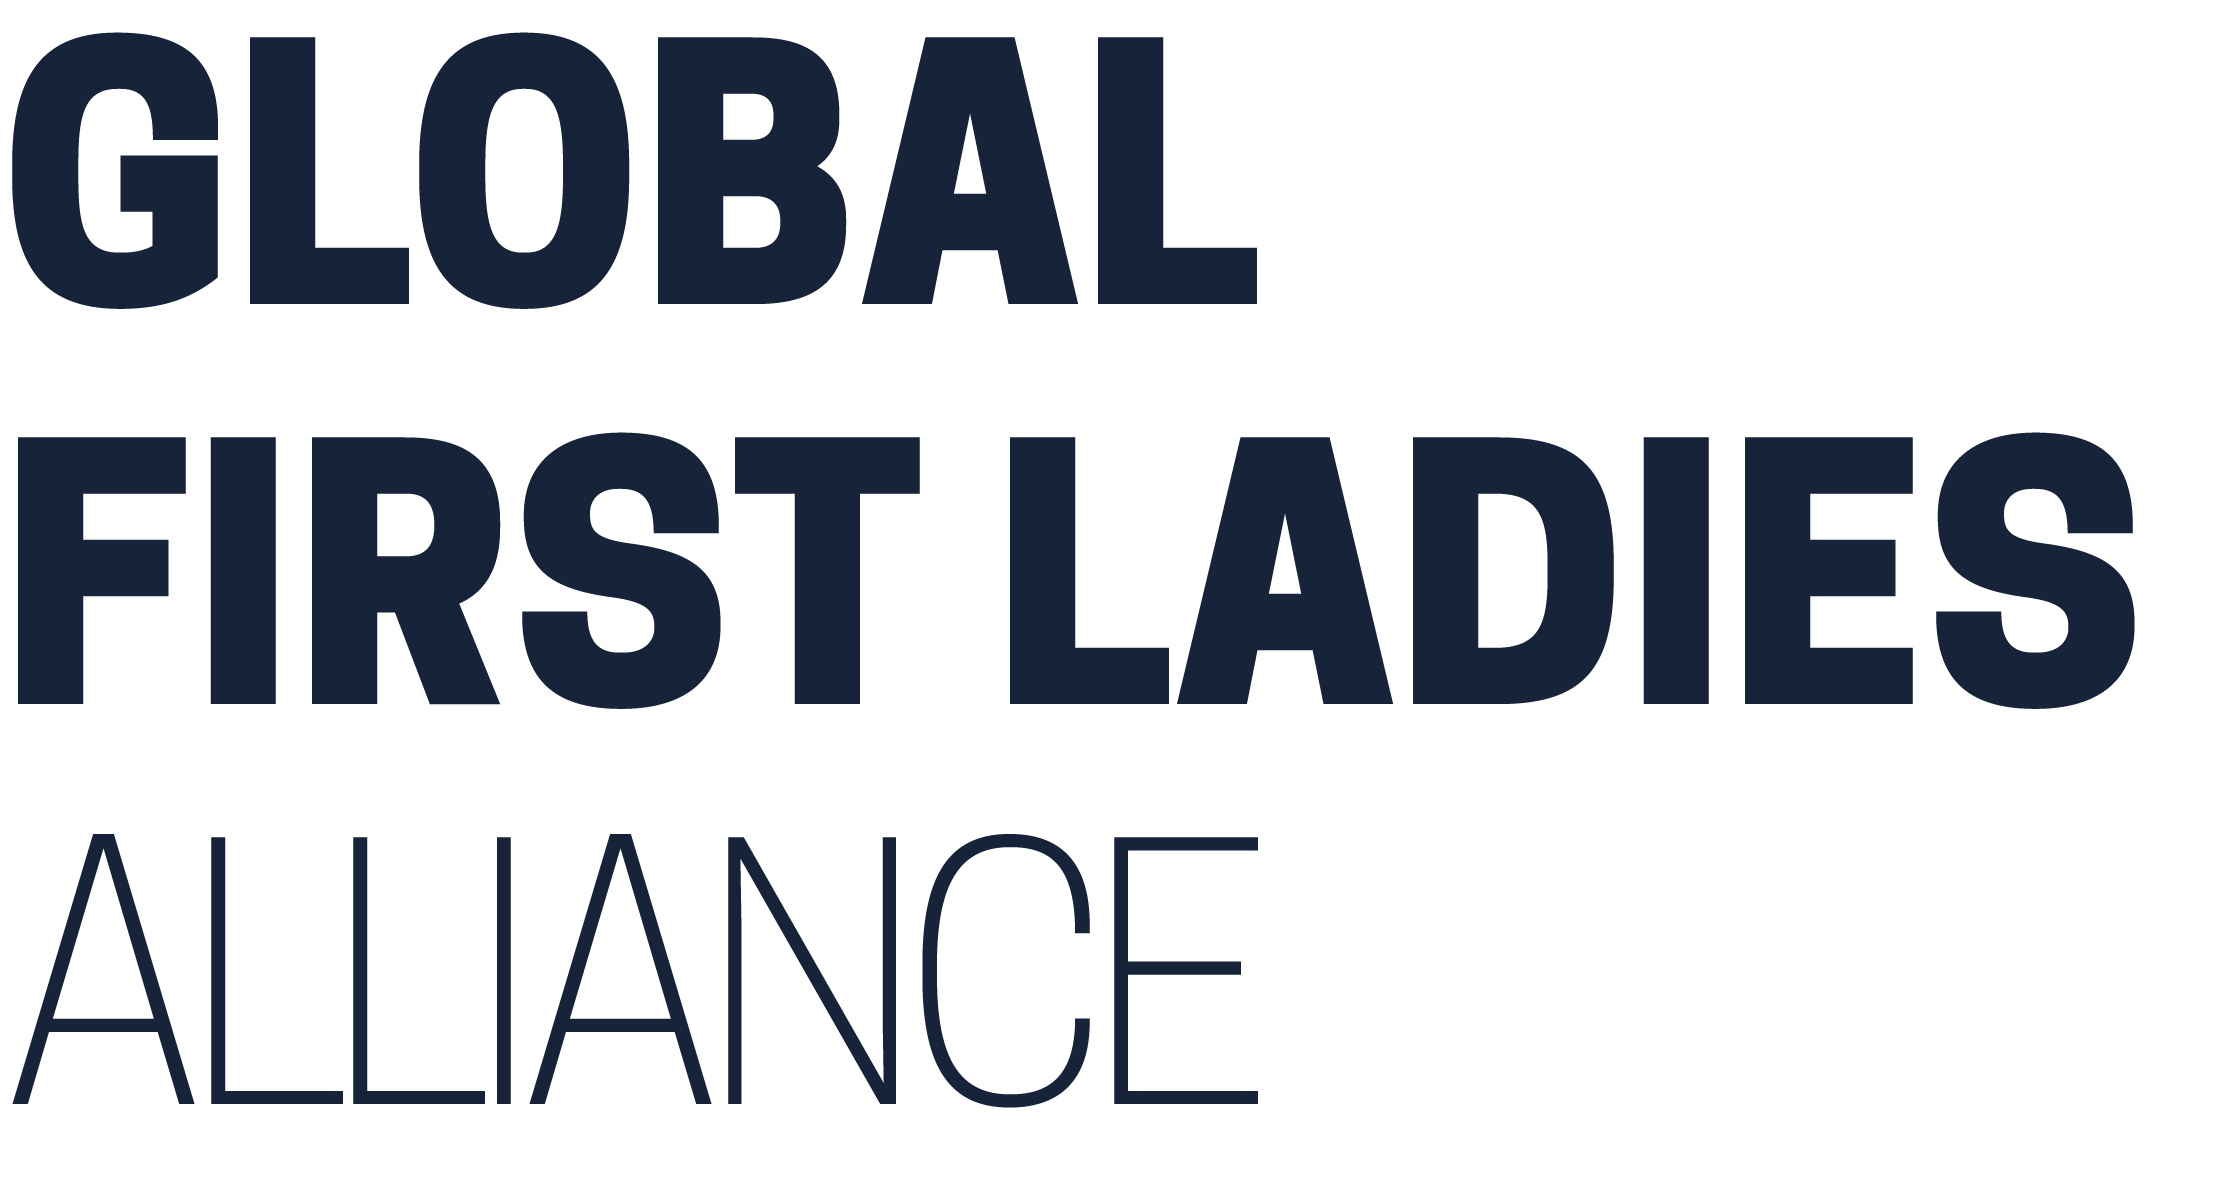 Global First Ladies Alliance